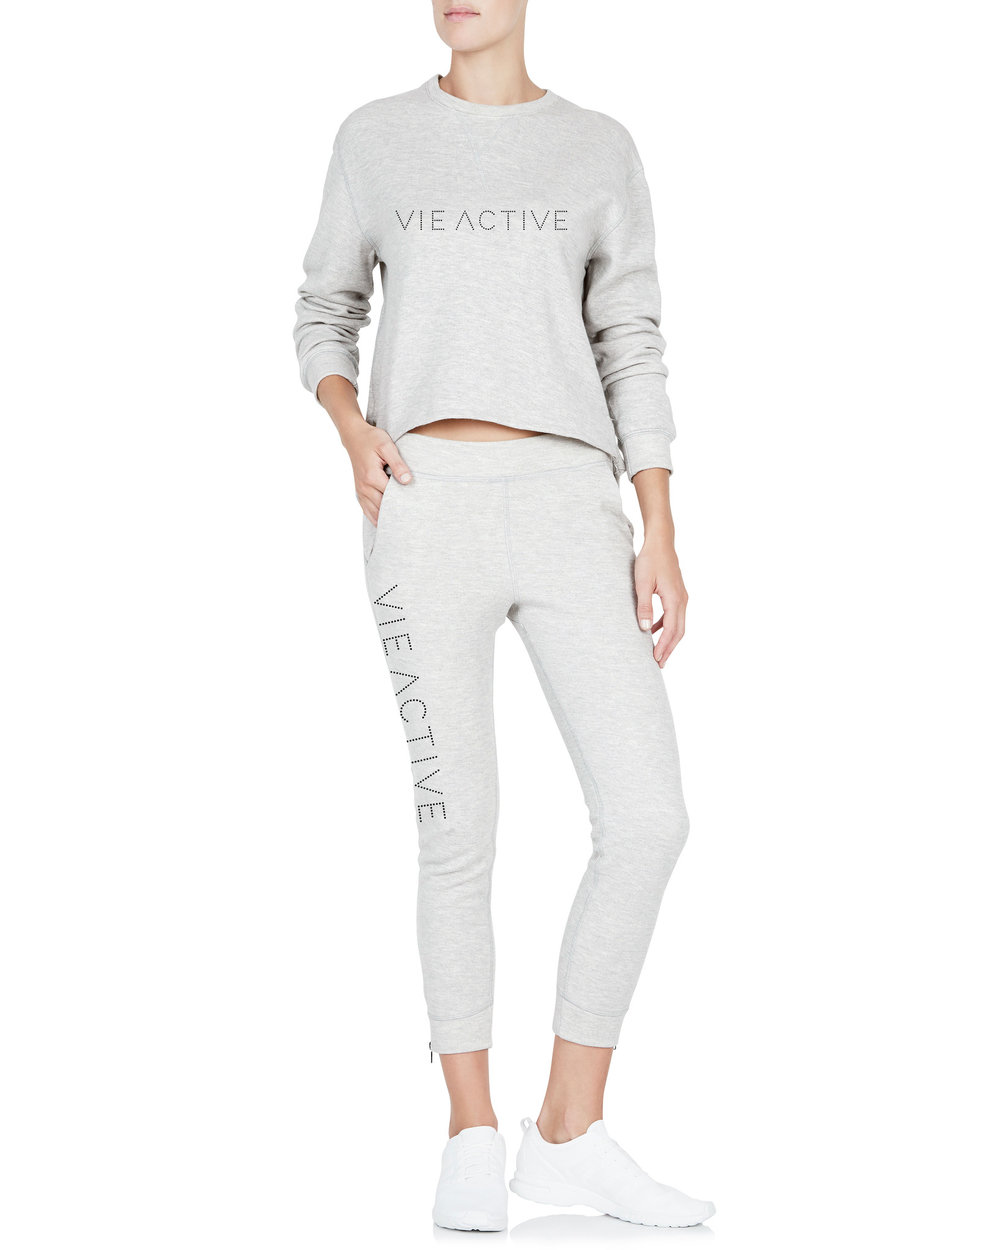 VIE ACTIVE SWEATS $98